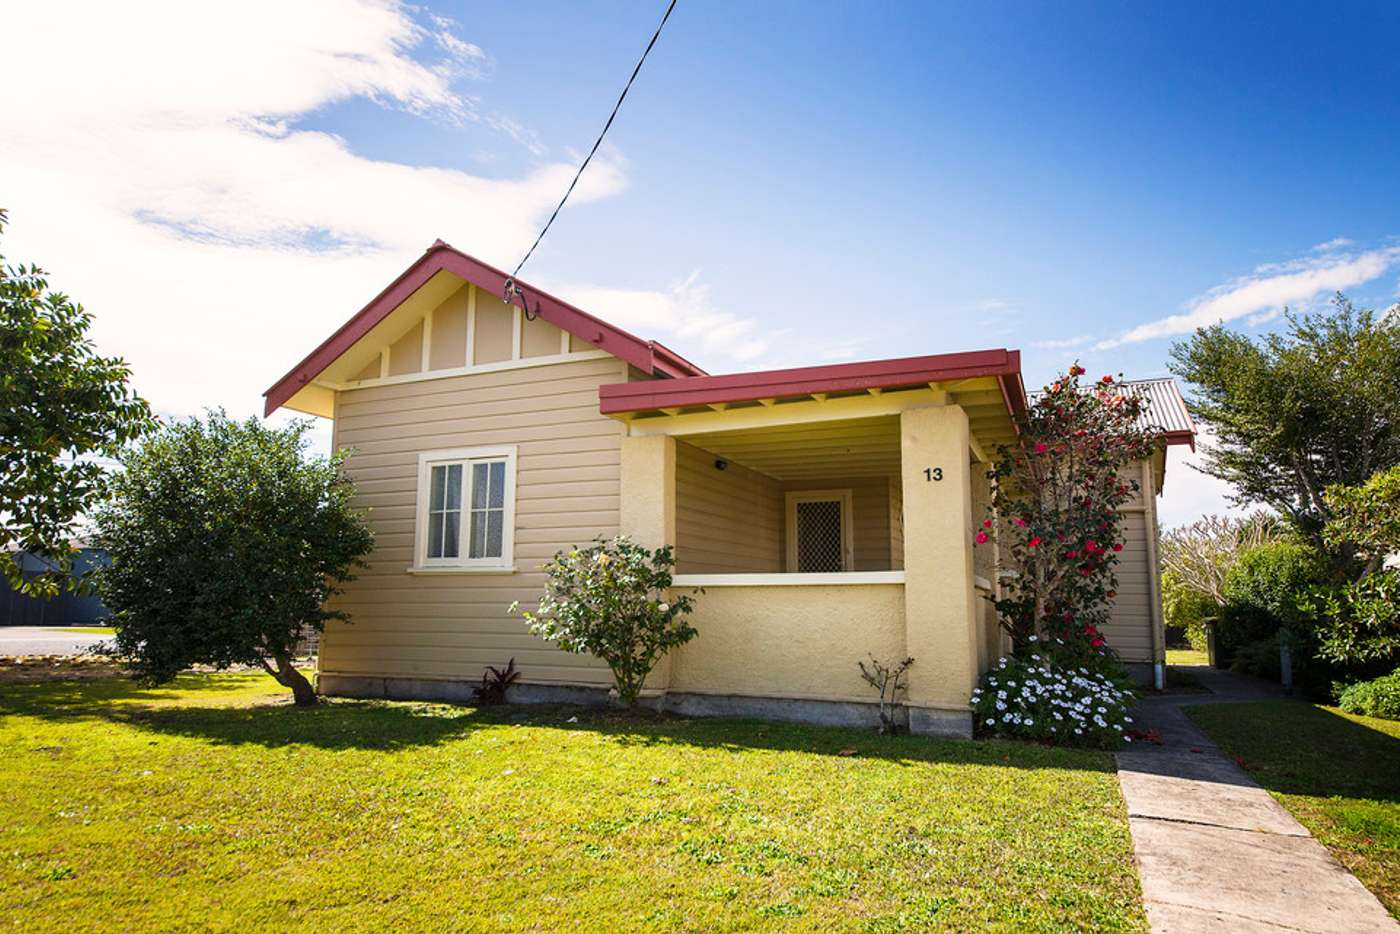 Main view of Homely house listing, 13 Olympia Street, Taree NSW 2430